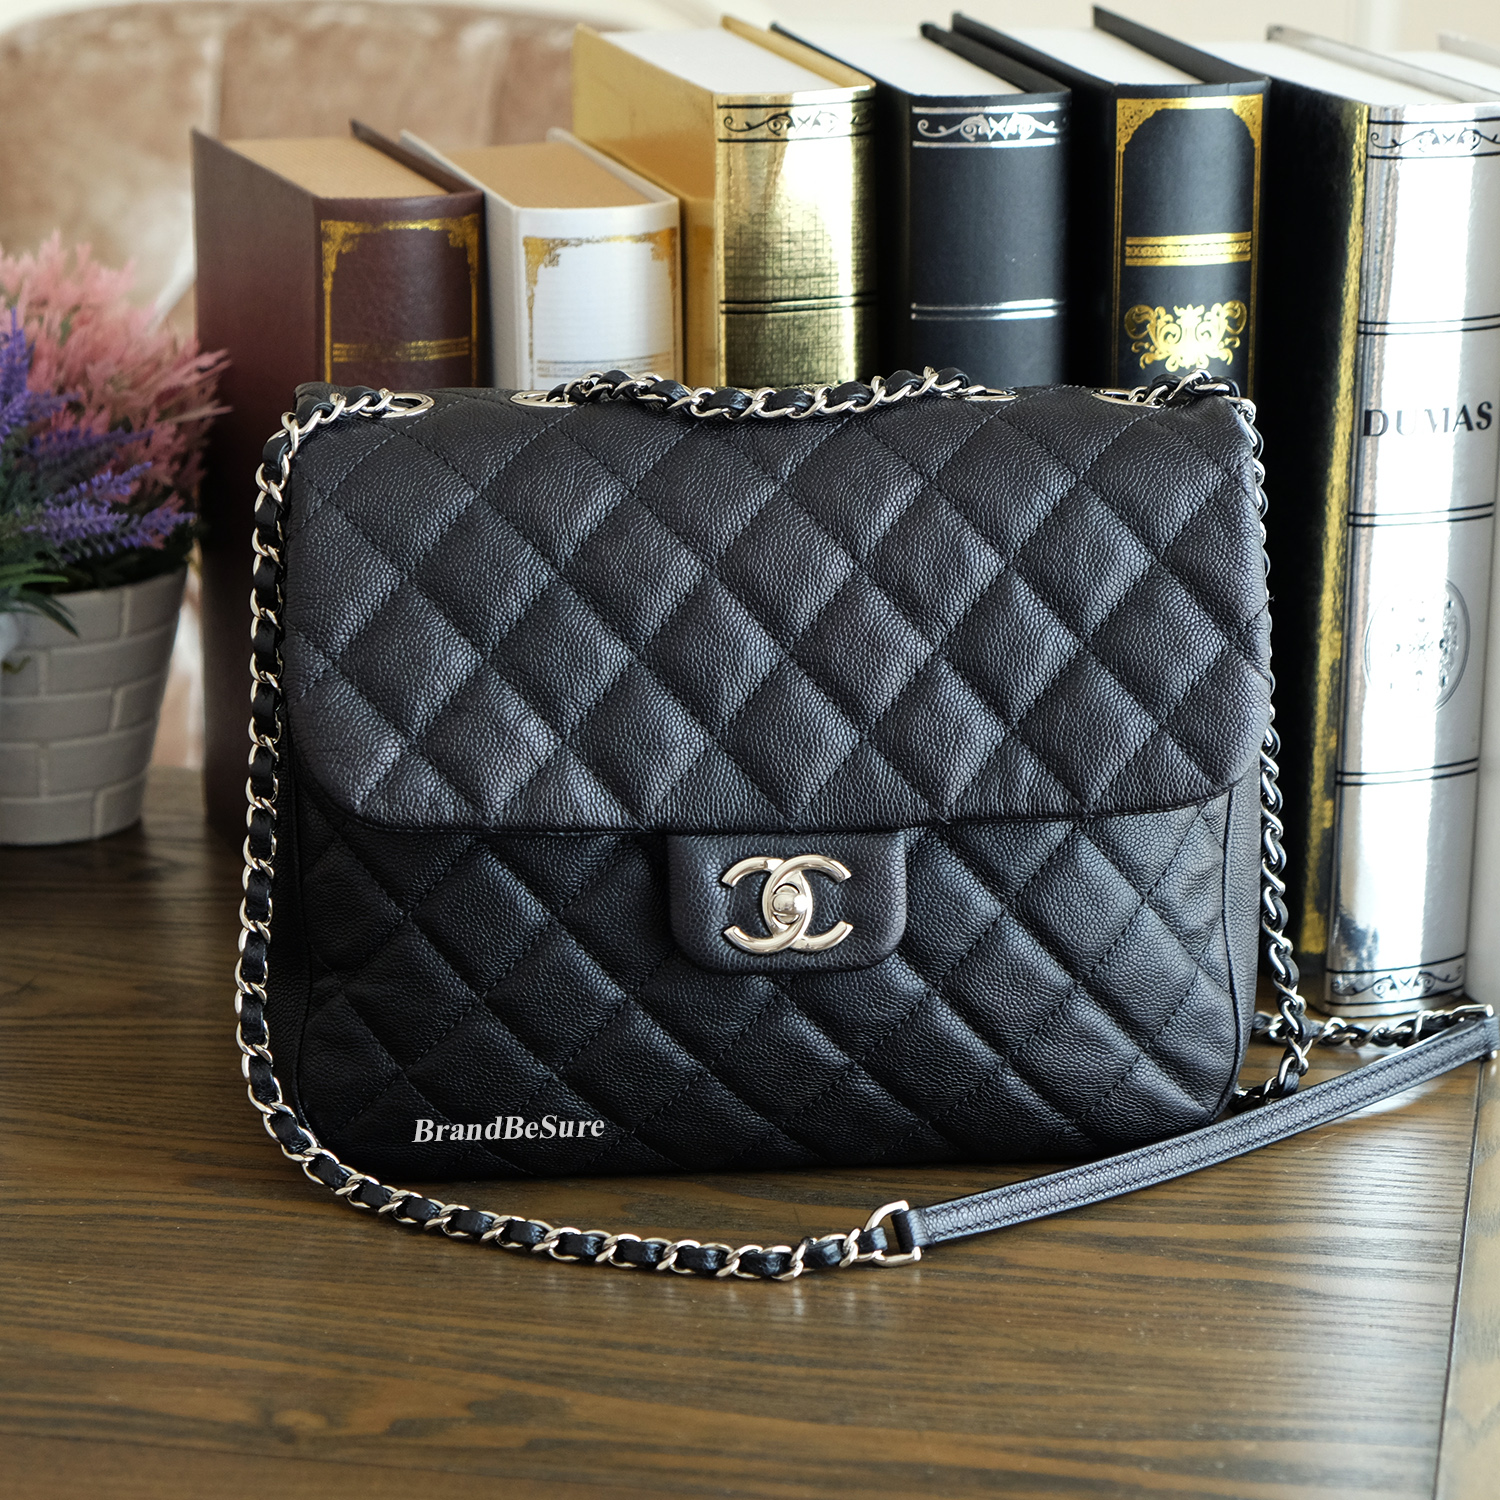 d0f712981b60 Chanel Black Caviar Small Urban Companion Flap SHW - BrandBeSure ...